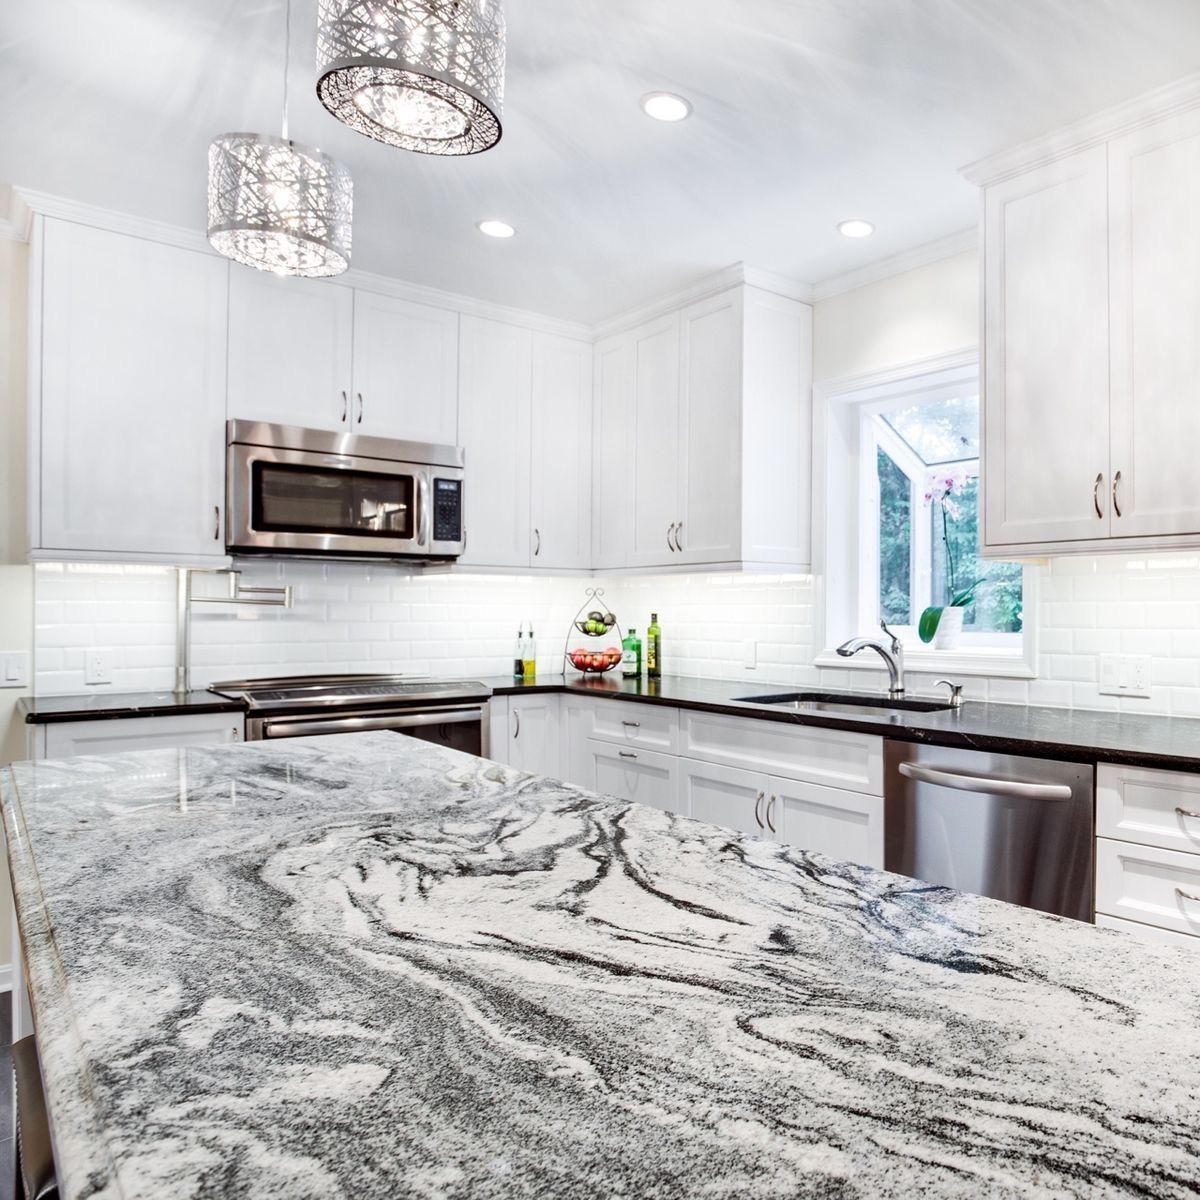 Viscon white granite kitchen ideas pinterest white White kitchen cabinets with granite countertops photos